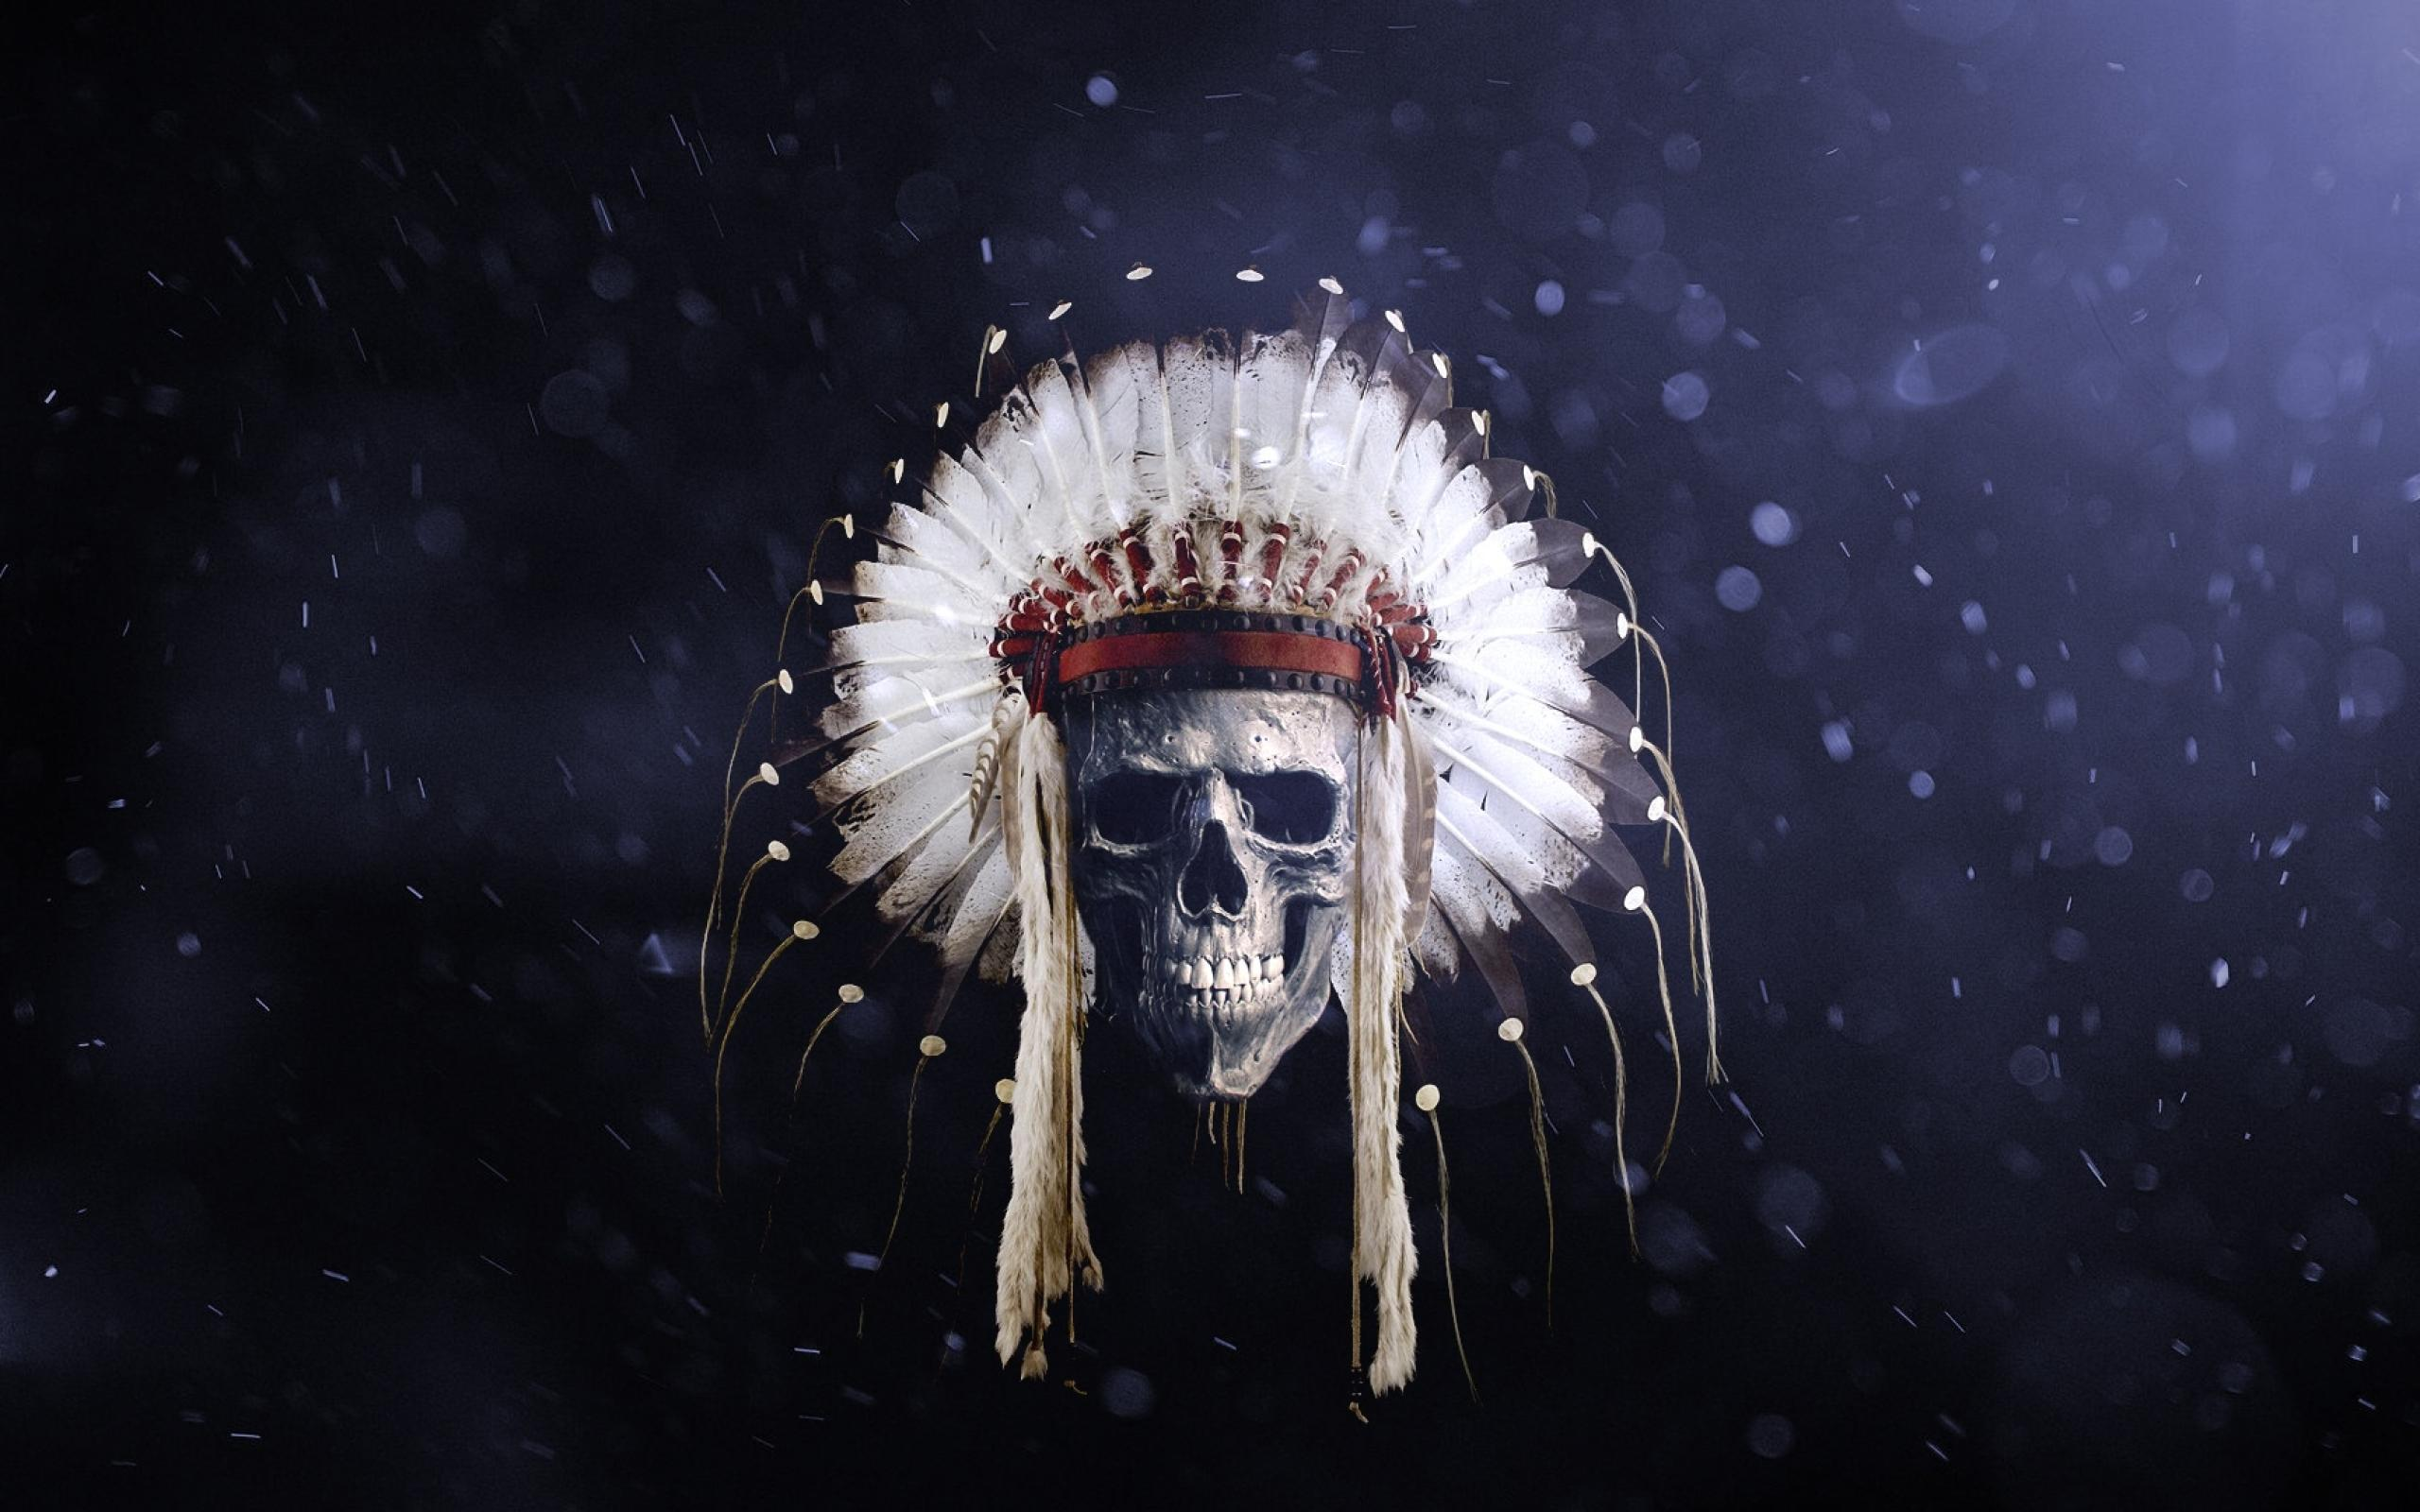 Skull Wallpapers 4k Ultra For Android Apk Download